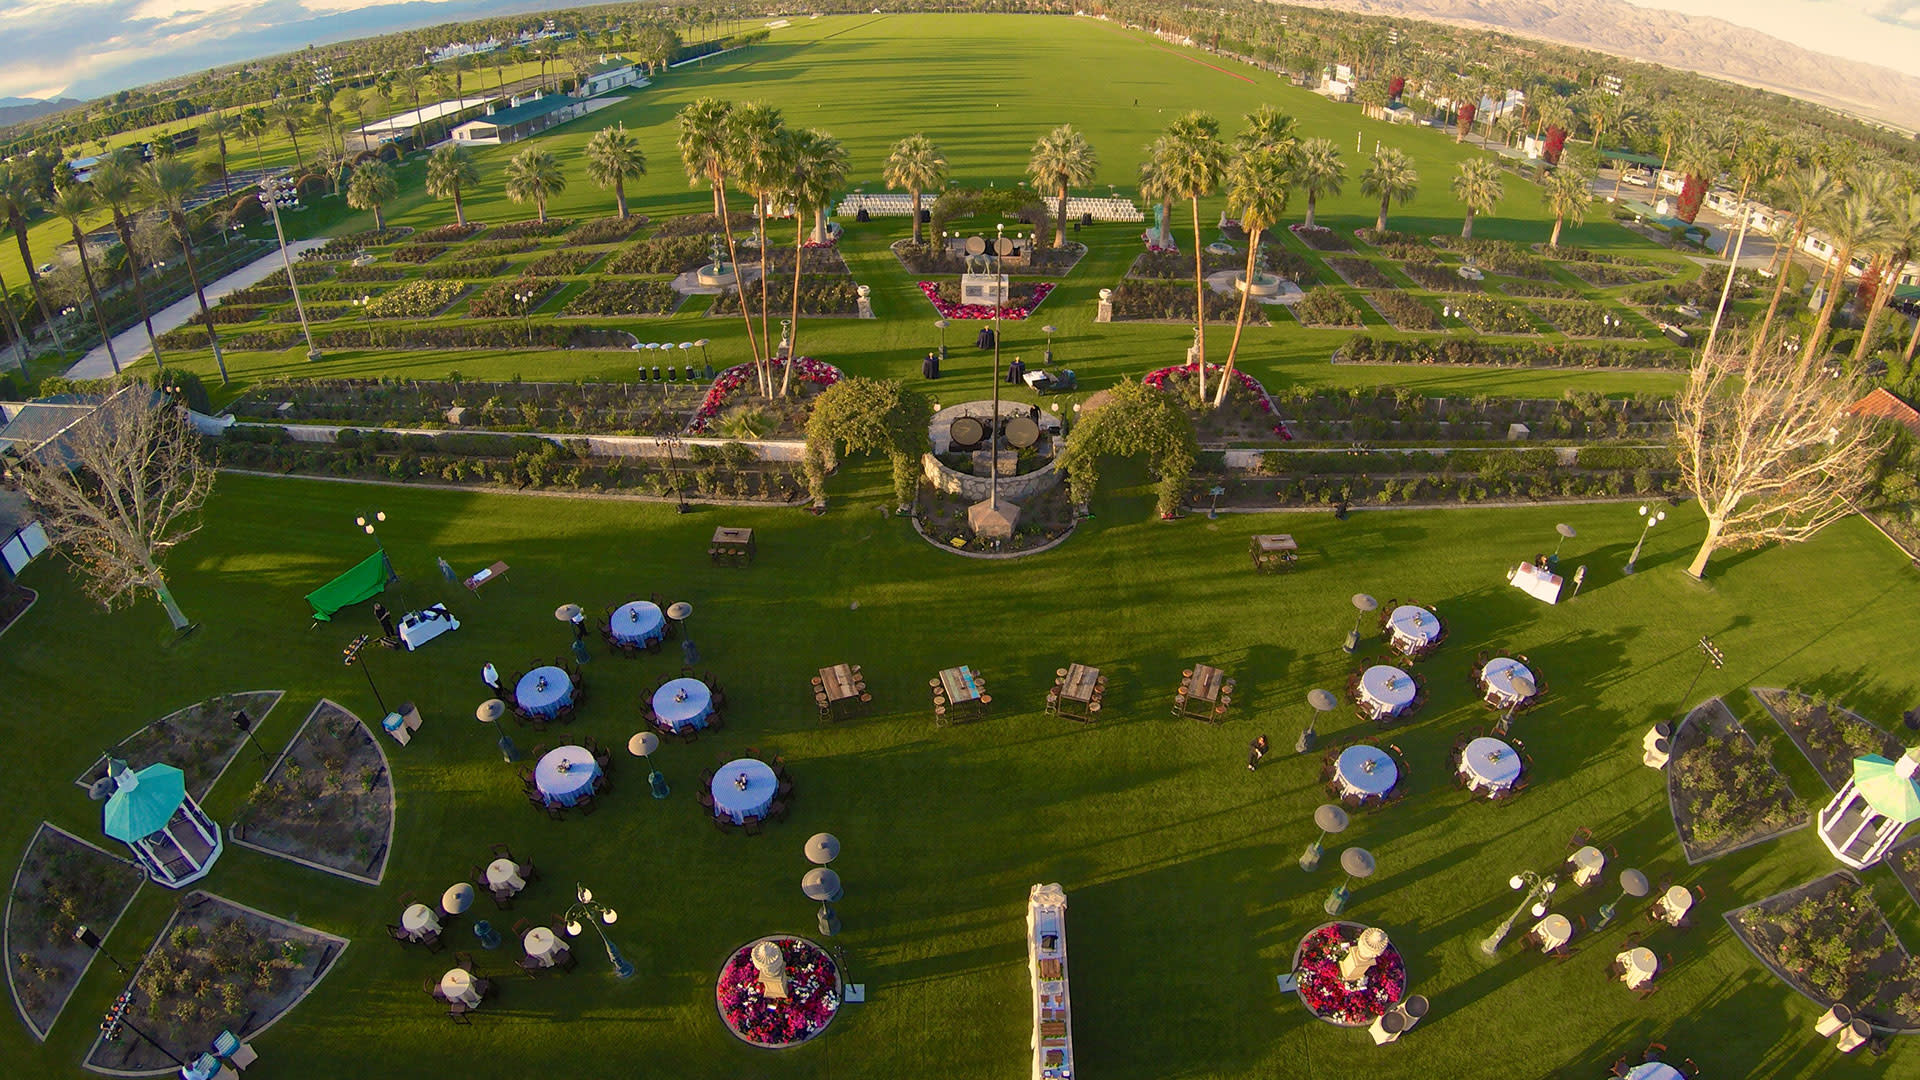 empire polo club meeting venue